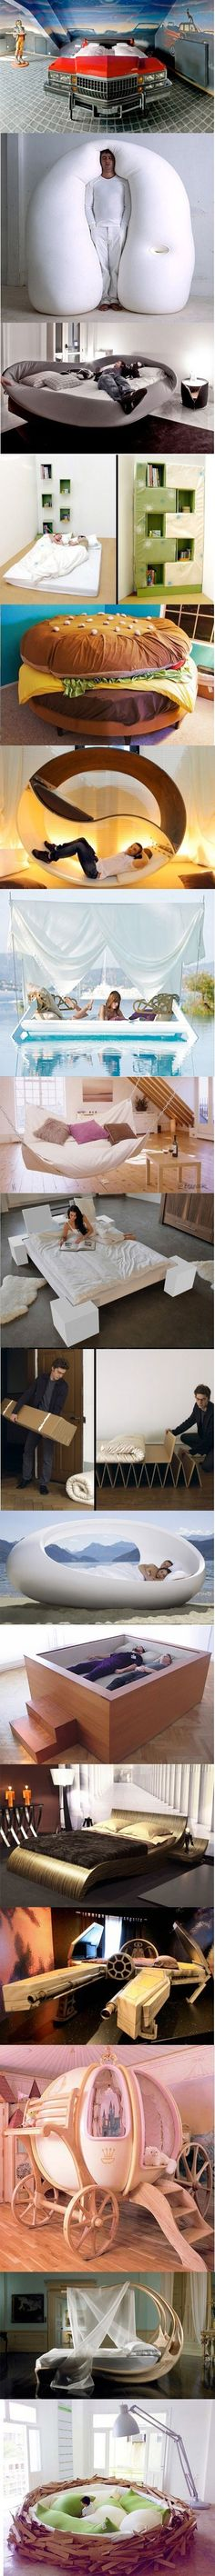 cool-creative-beds